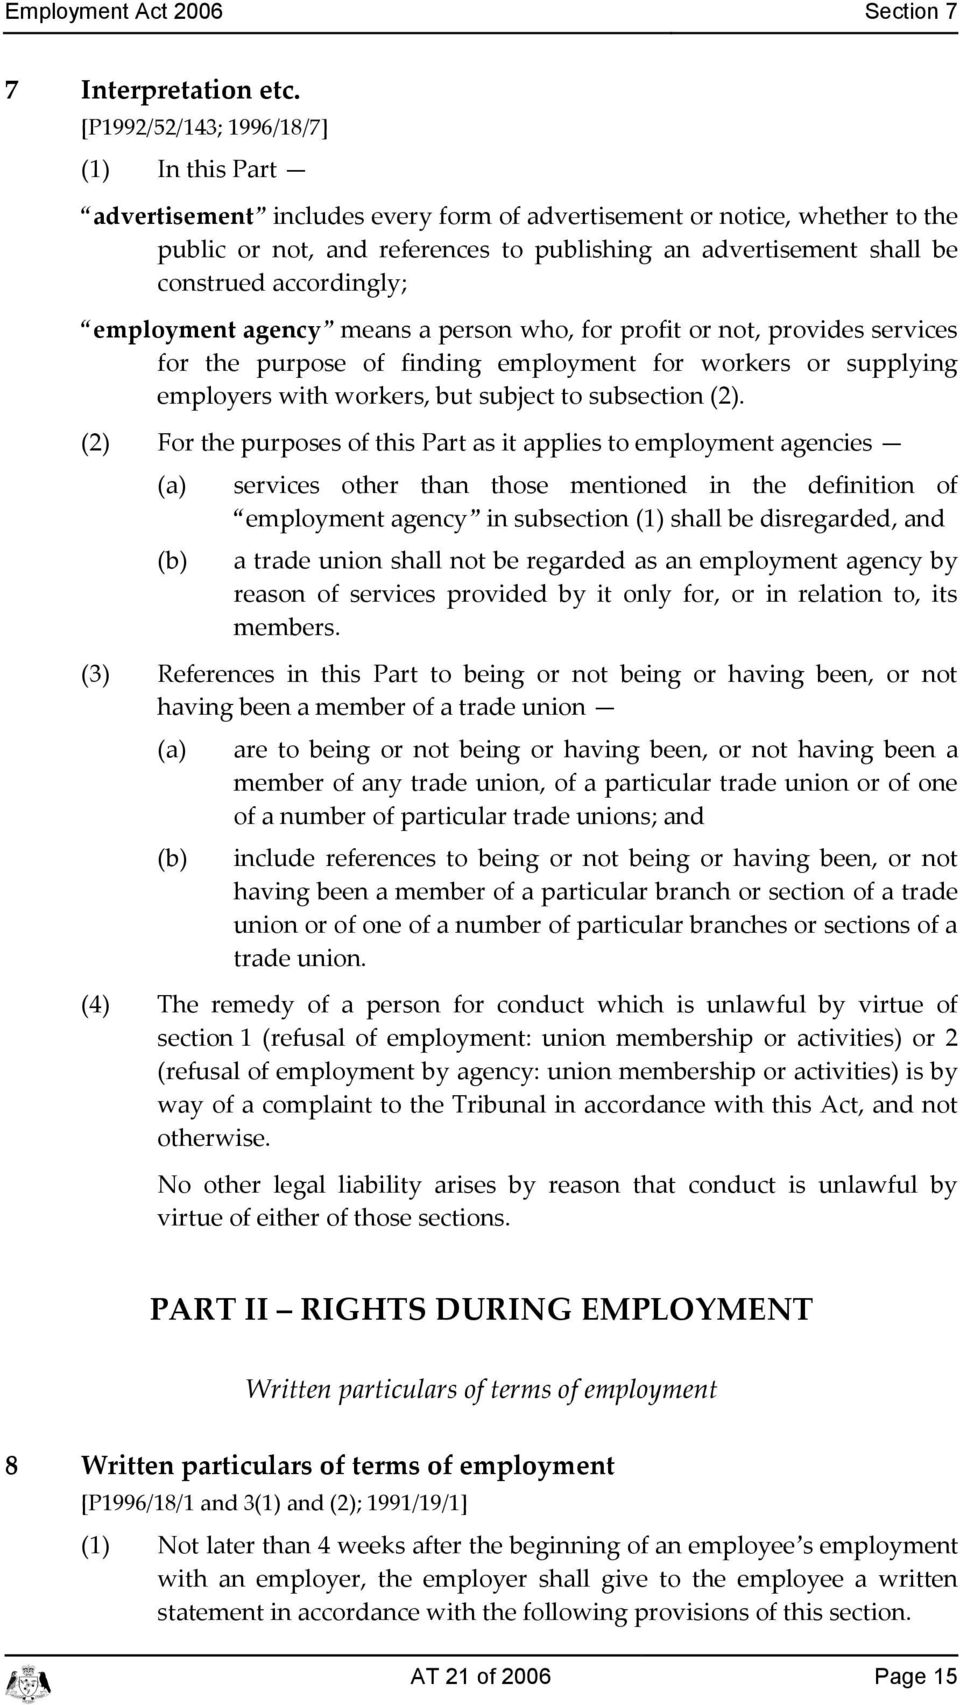 aordingly; employment ageny means a person who, for profit or not, provides servies for the purpose of finding employment for workers or supplying employers with workers, but subjet to subsetion (2).